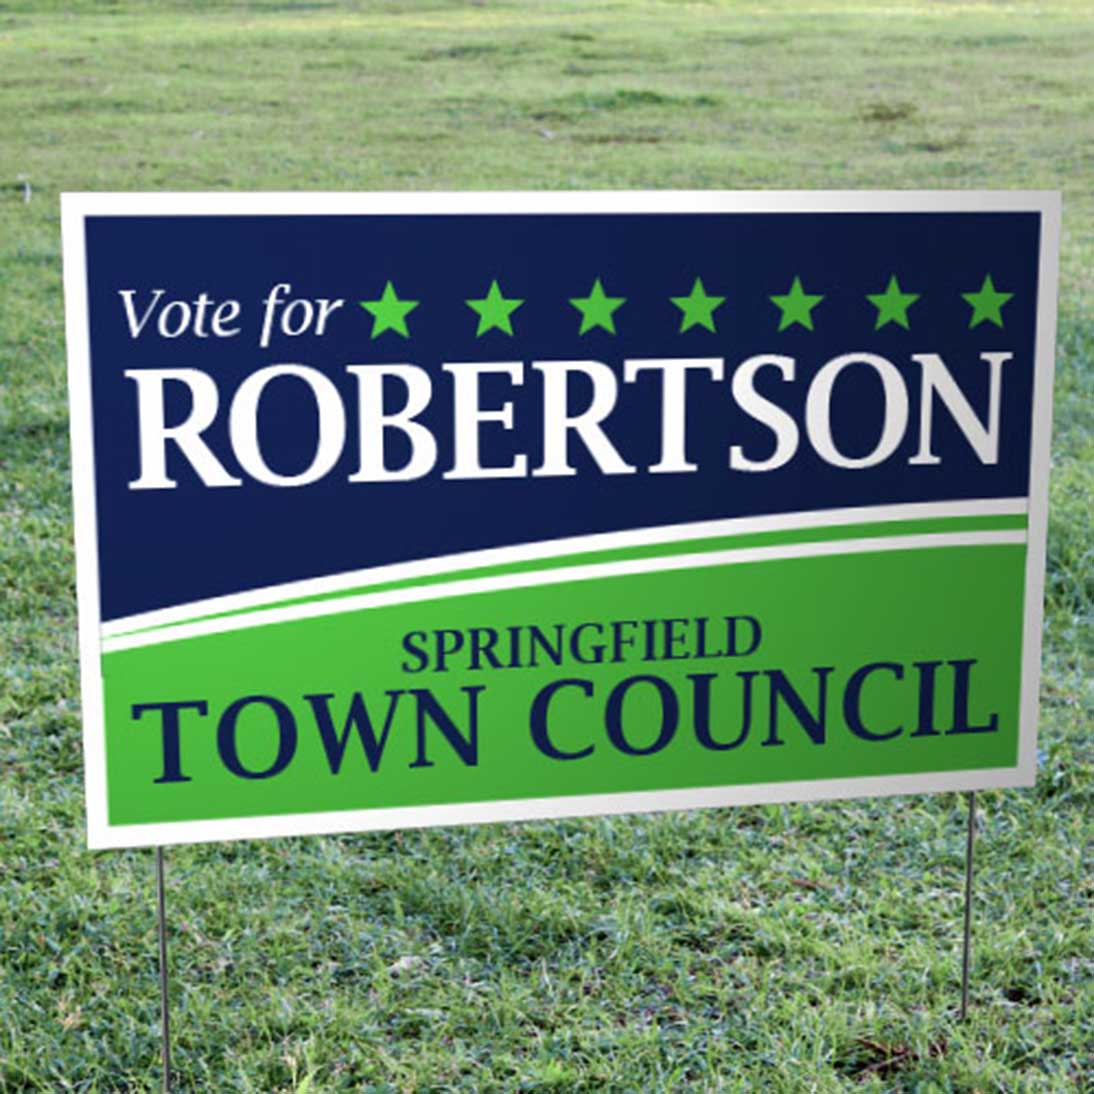 runandwin is different – your campaign yard signs will show that